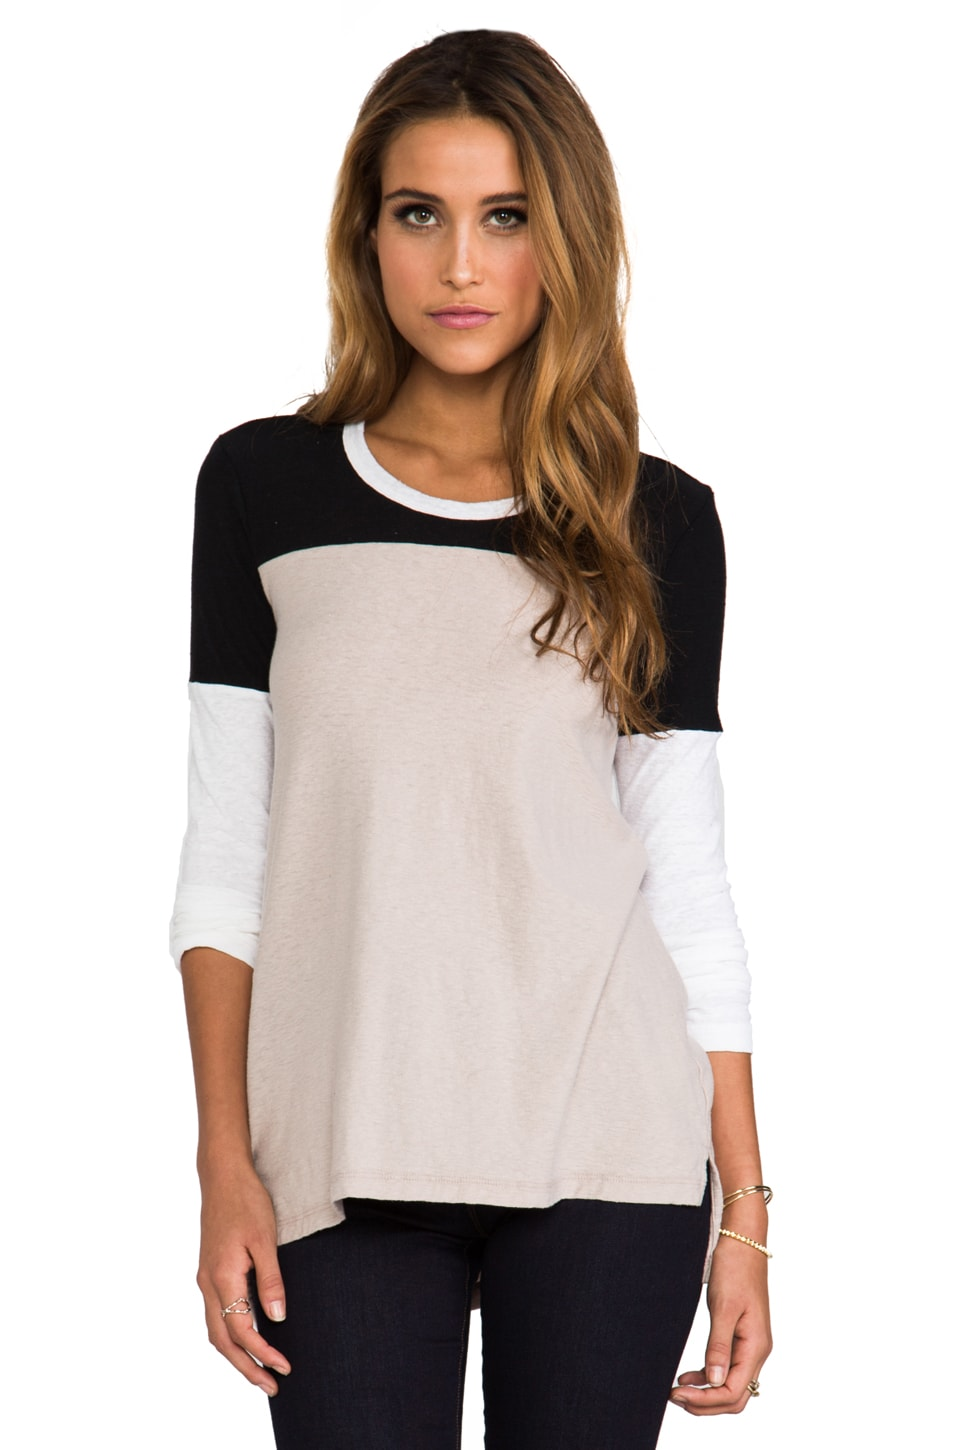 James Perse Colorblock Varsity Tee in Nude/White/Black